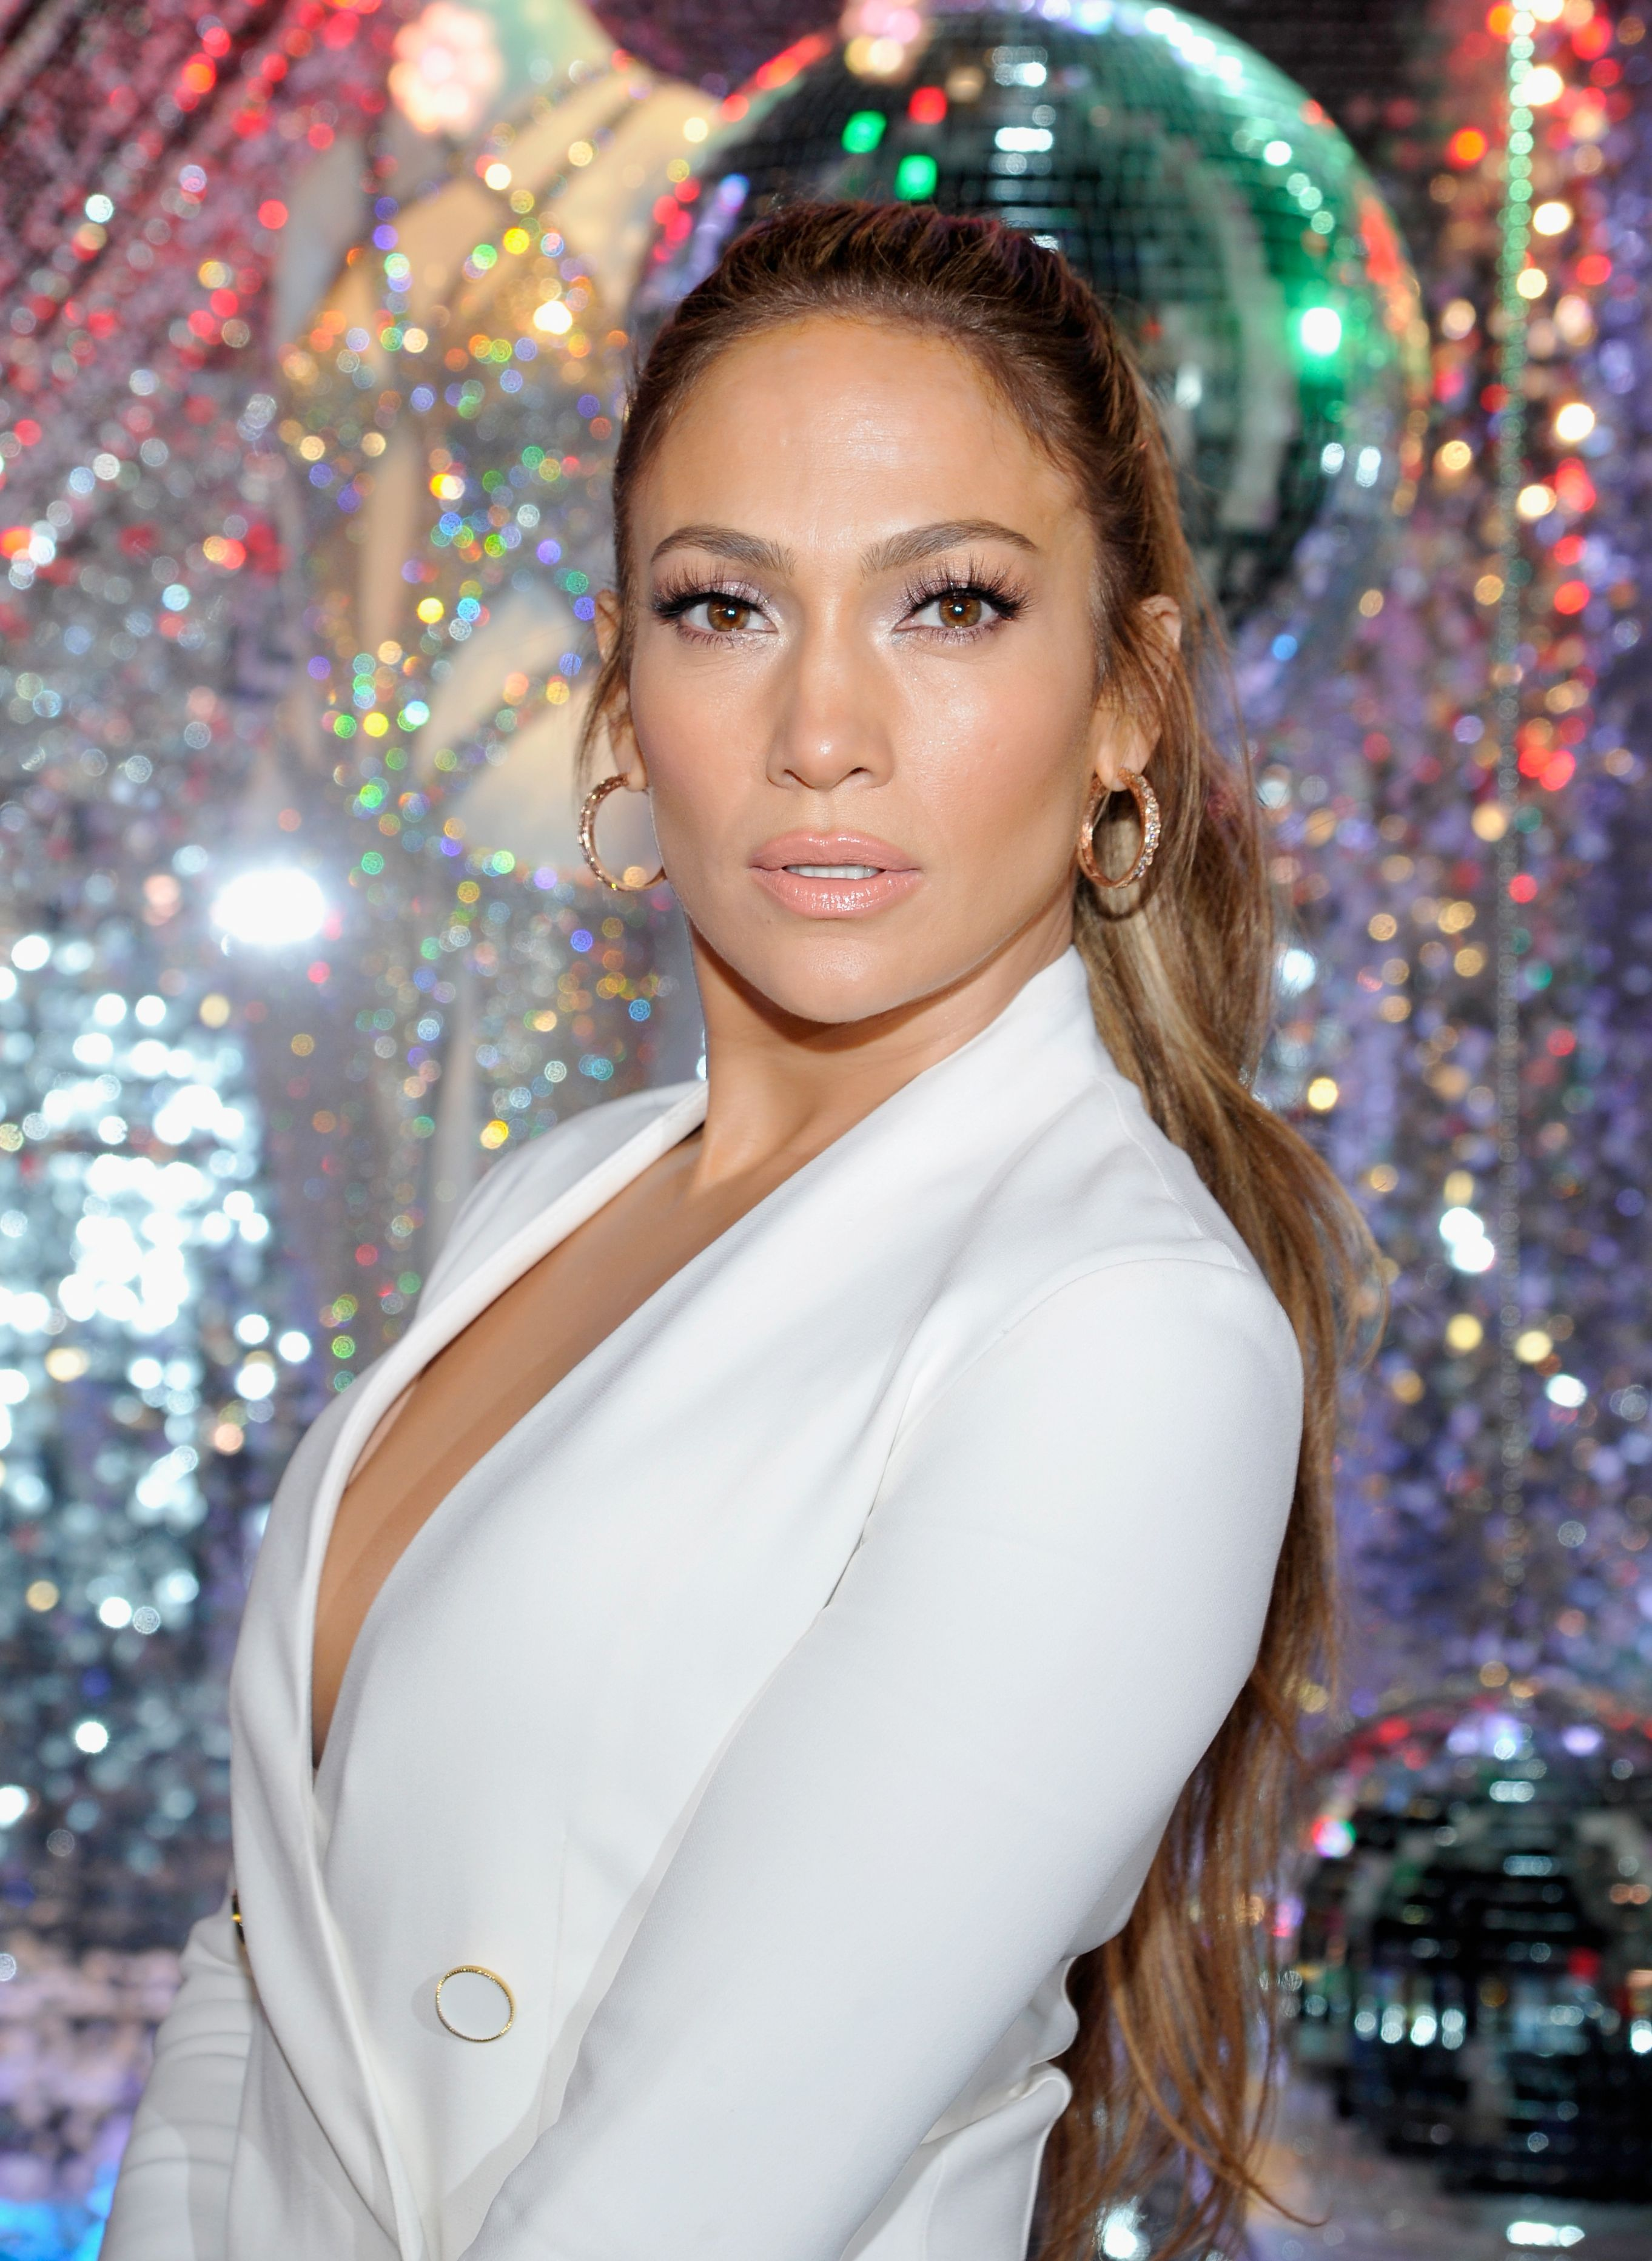 6 things Jennifer Lopez does to get glowing skin